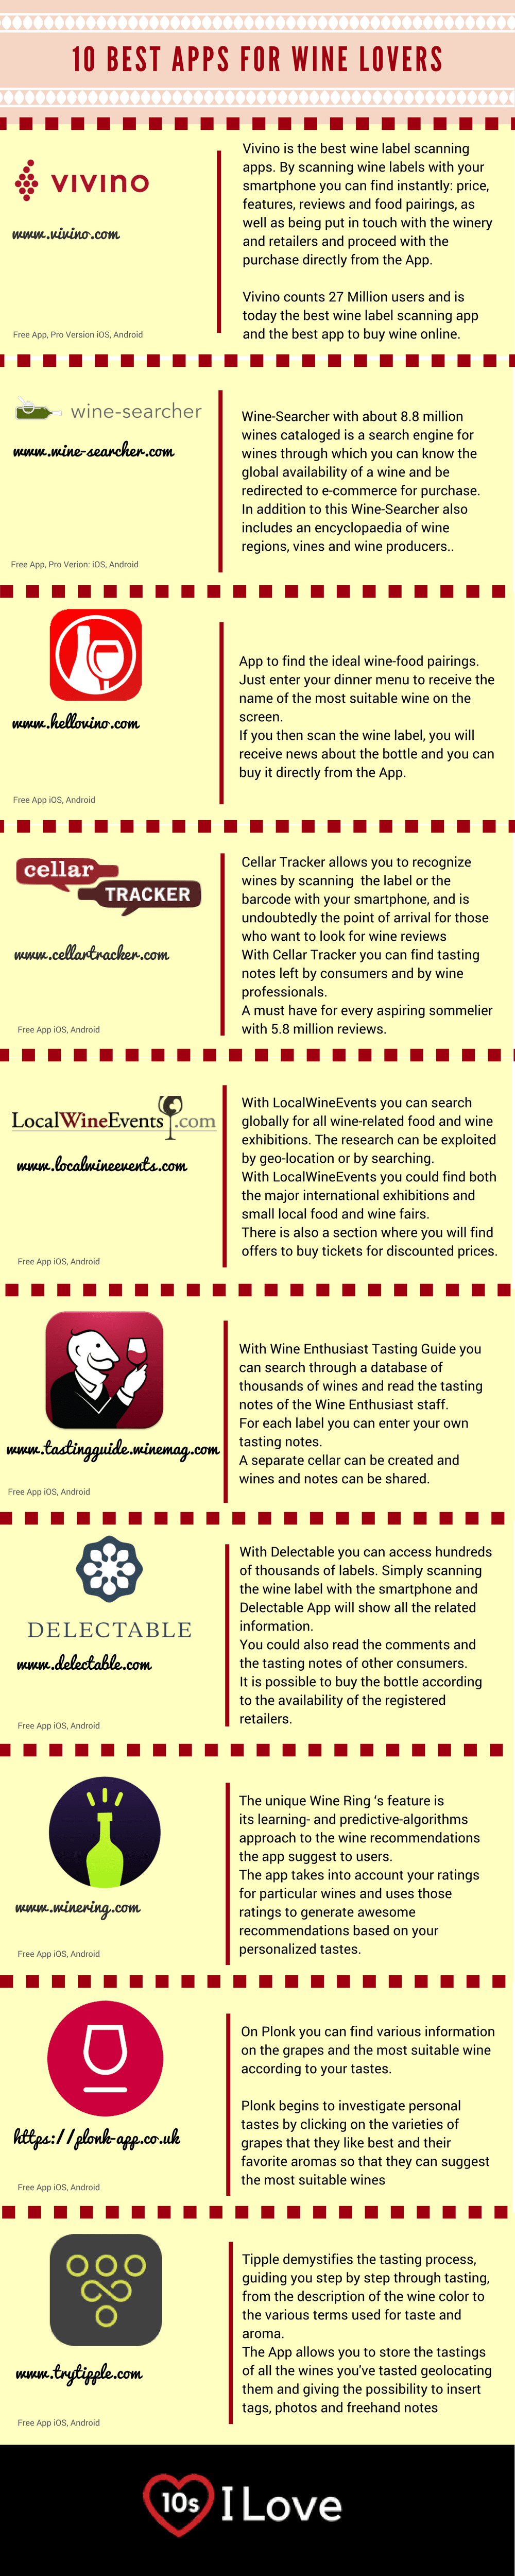 best wine apps infographic